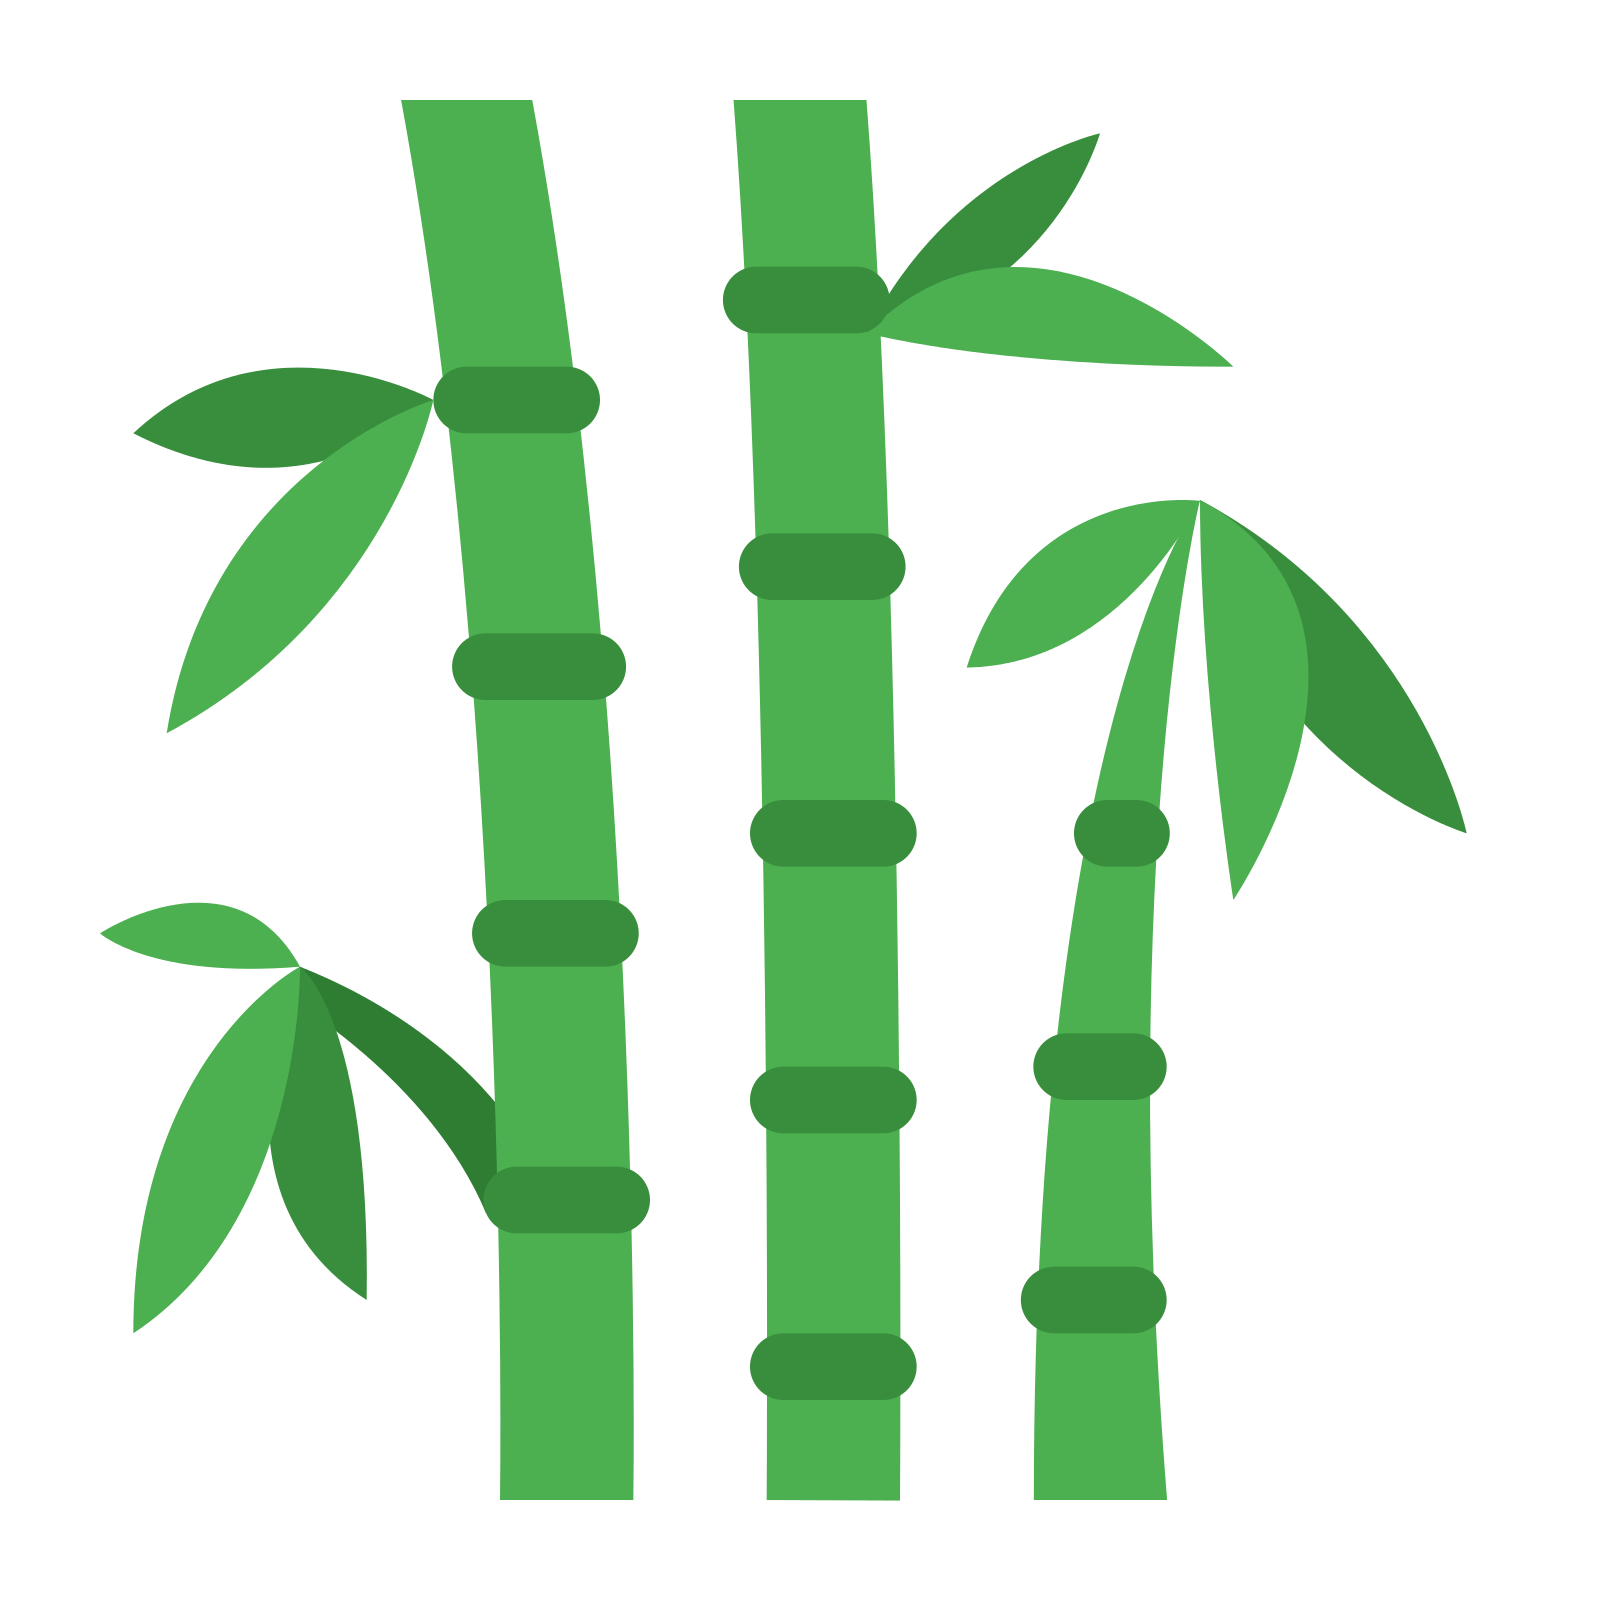 bamboo icon download icons #18285